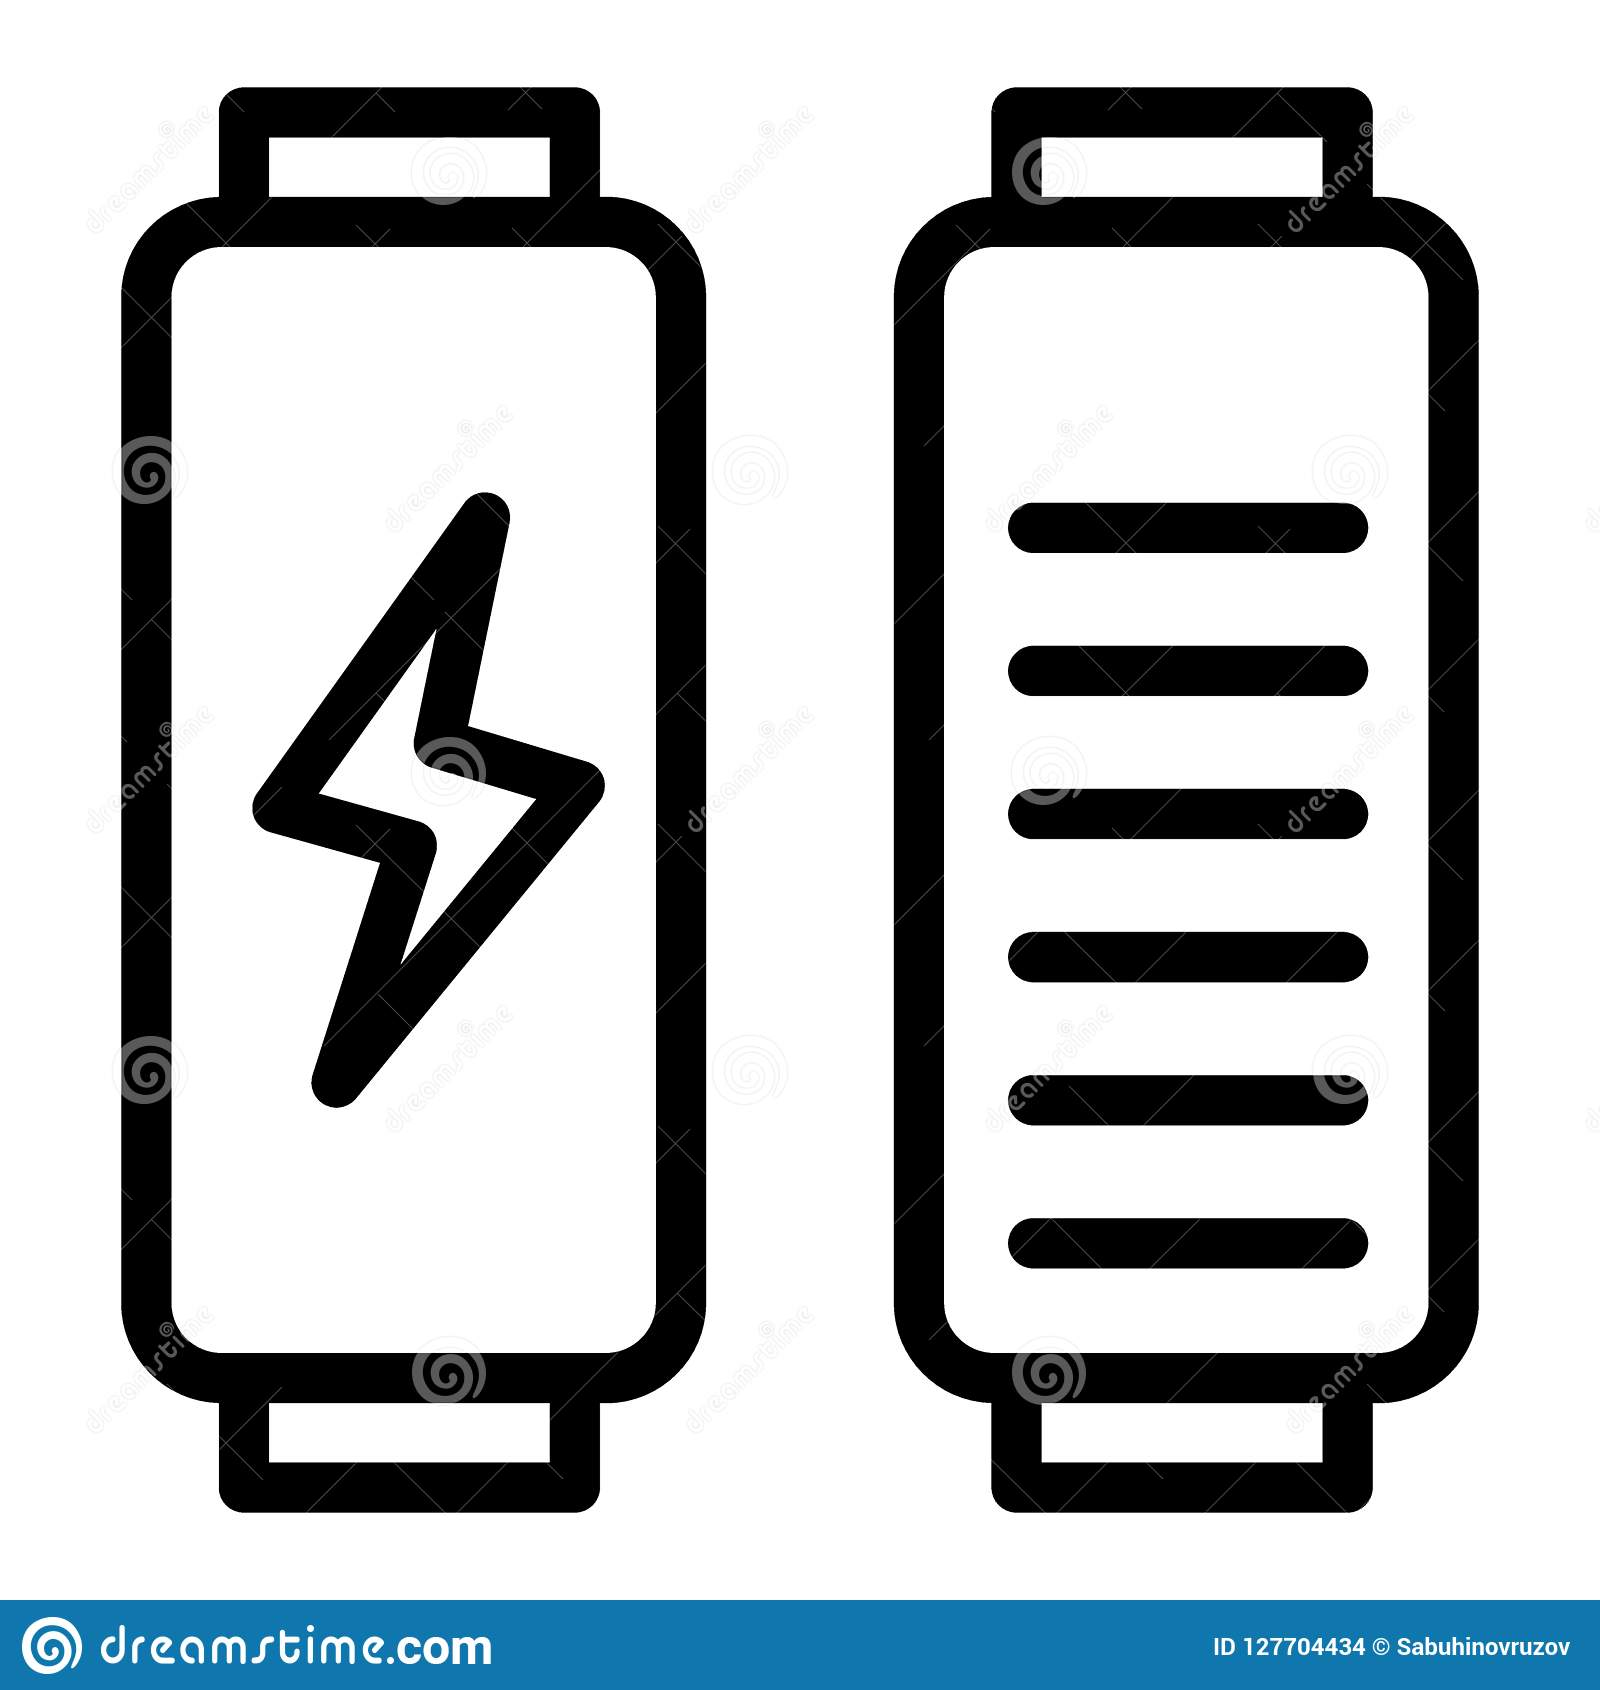 Battery load line icon. Full charge vector illustration isolated on white. Energy outline style design, designed for web